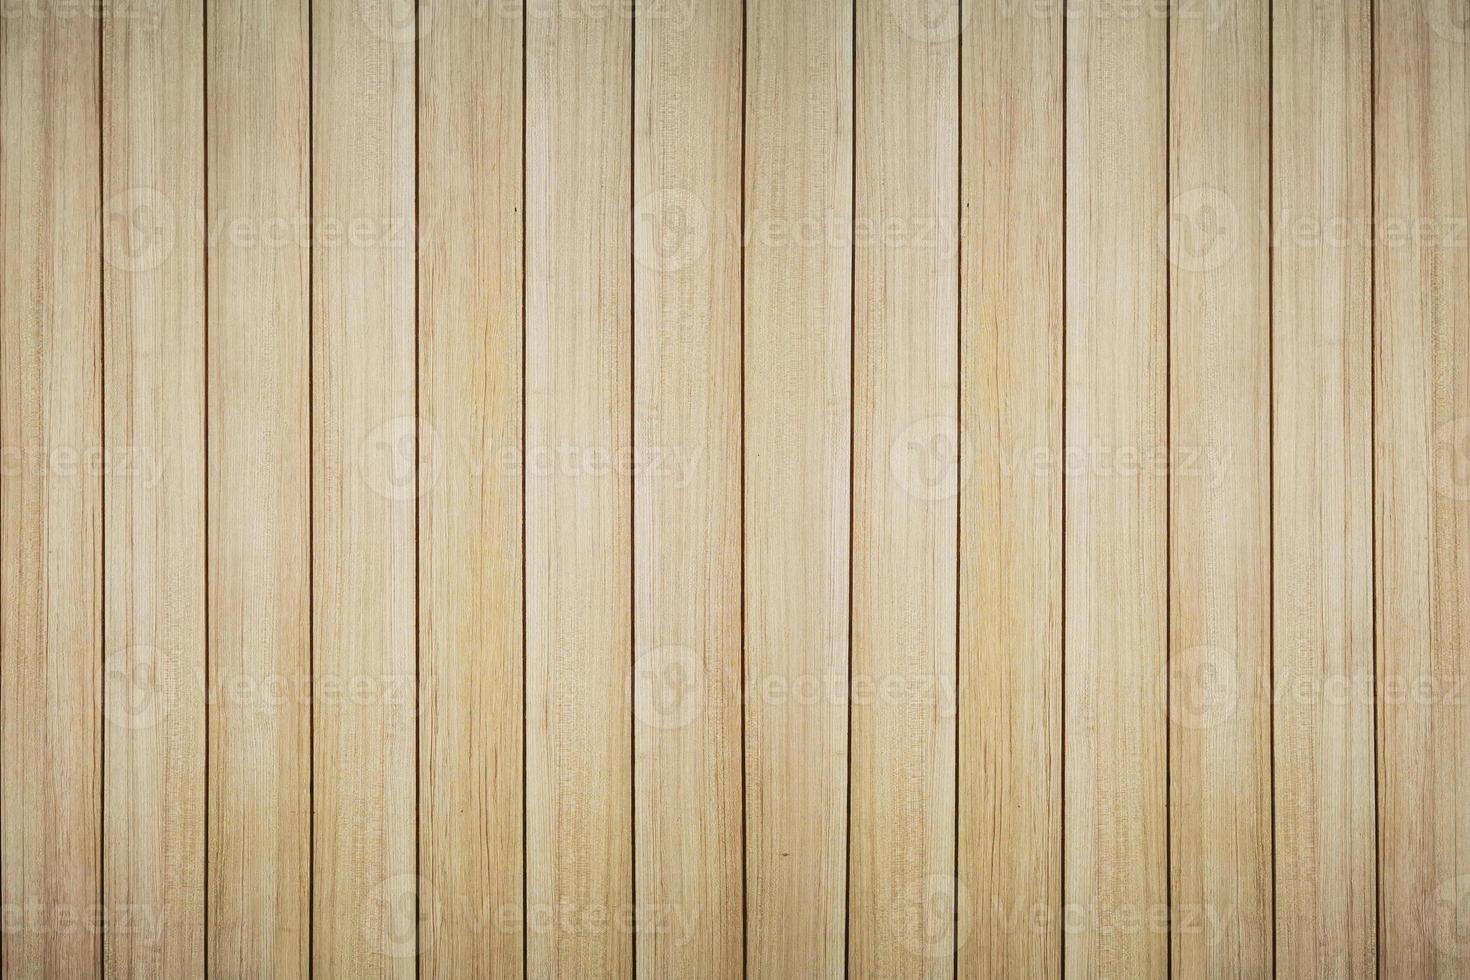 Brown wood texture seamless in retro background photo